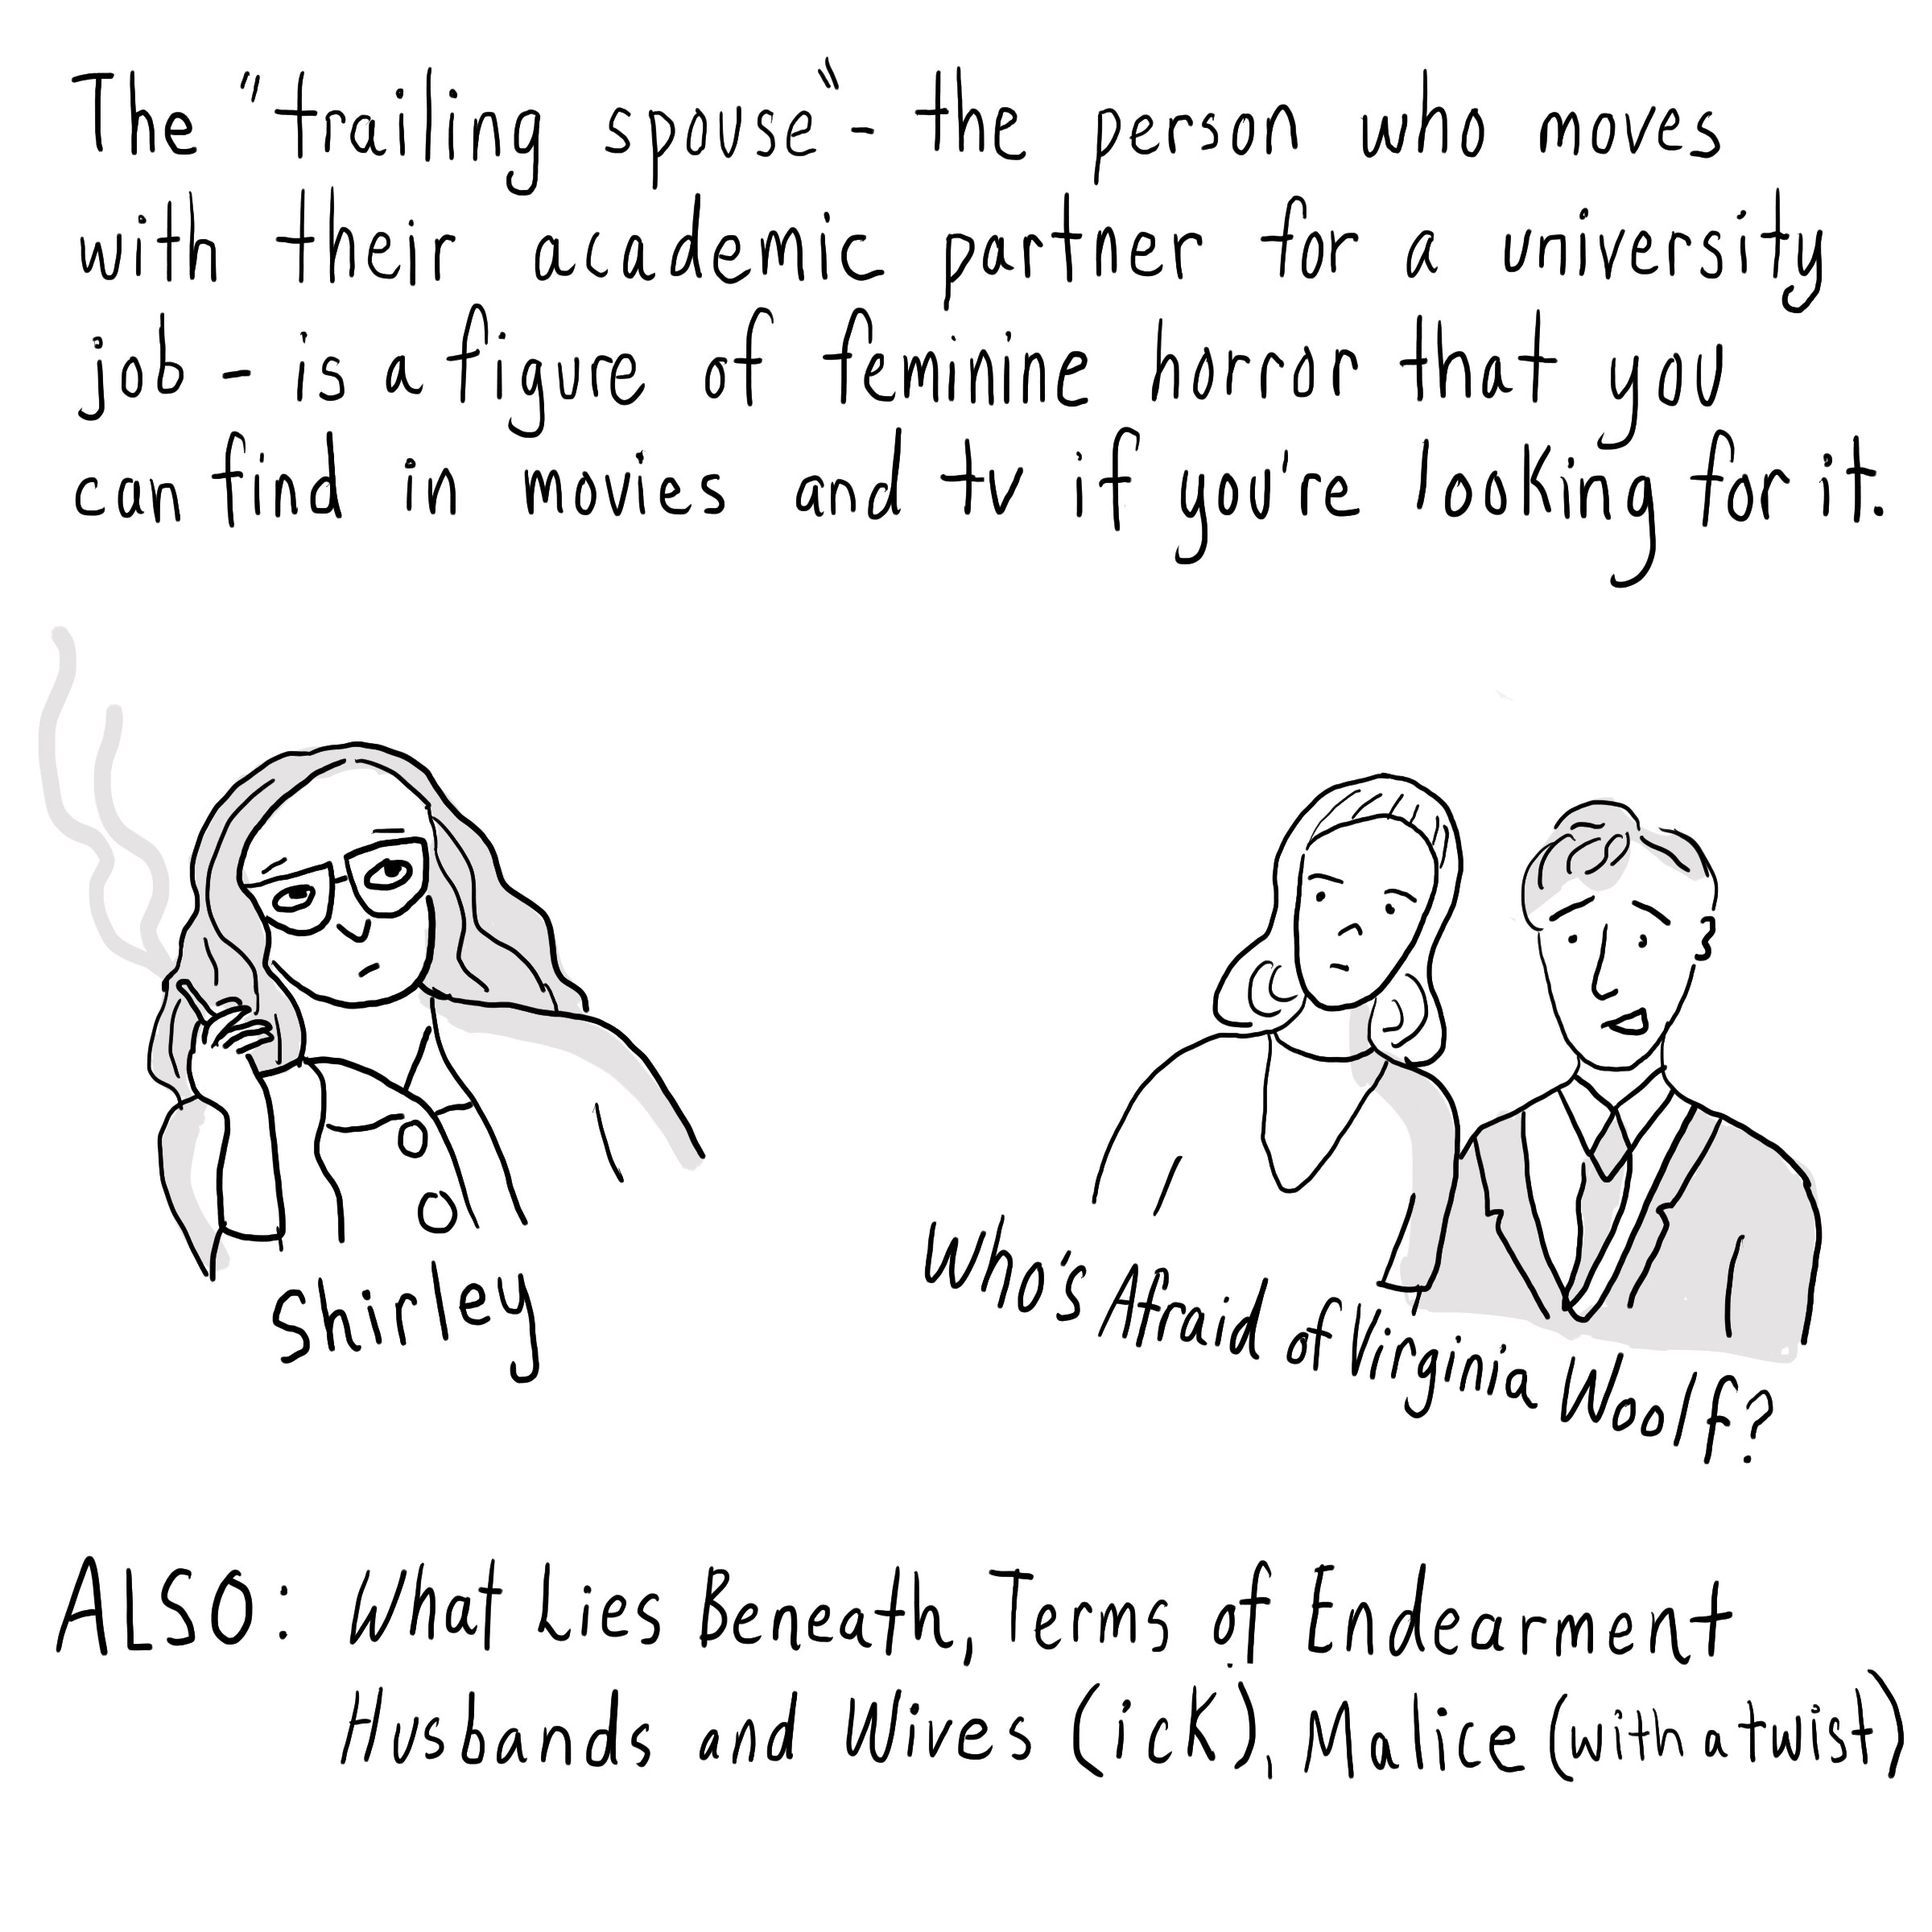 Text: The trailing spouse—the person who moves with their academic partner for a university job—is a figure of feminine horror that you can find in movies and TV if you're looking for it. [Drawing of a person smoking, labeled Shirley, next to a straight couple labeled Who's Afraid of Virginia Woolf?] Text: Also: What Lies Beneath, Terms of Endearment, Husbands and Wives (ick), Malice (with a twist.)